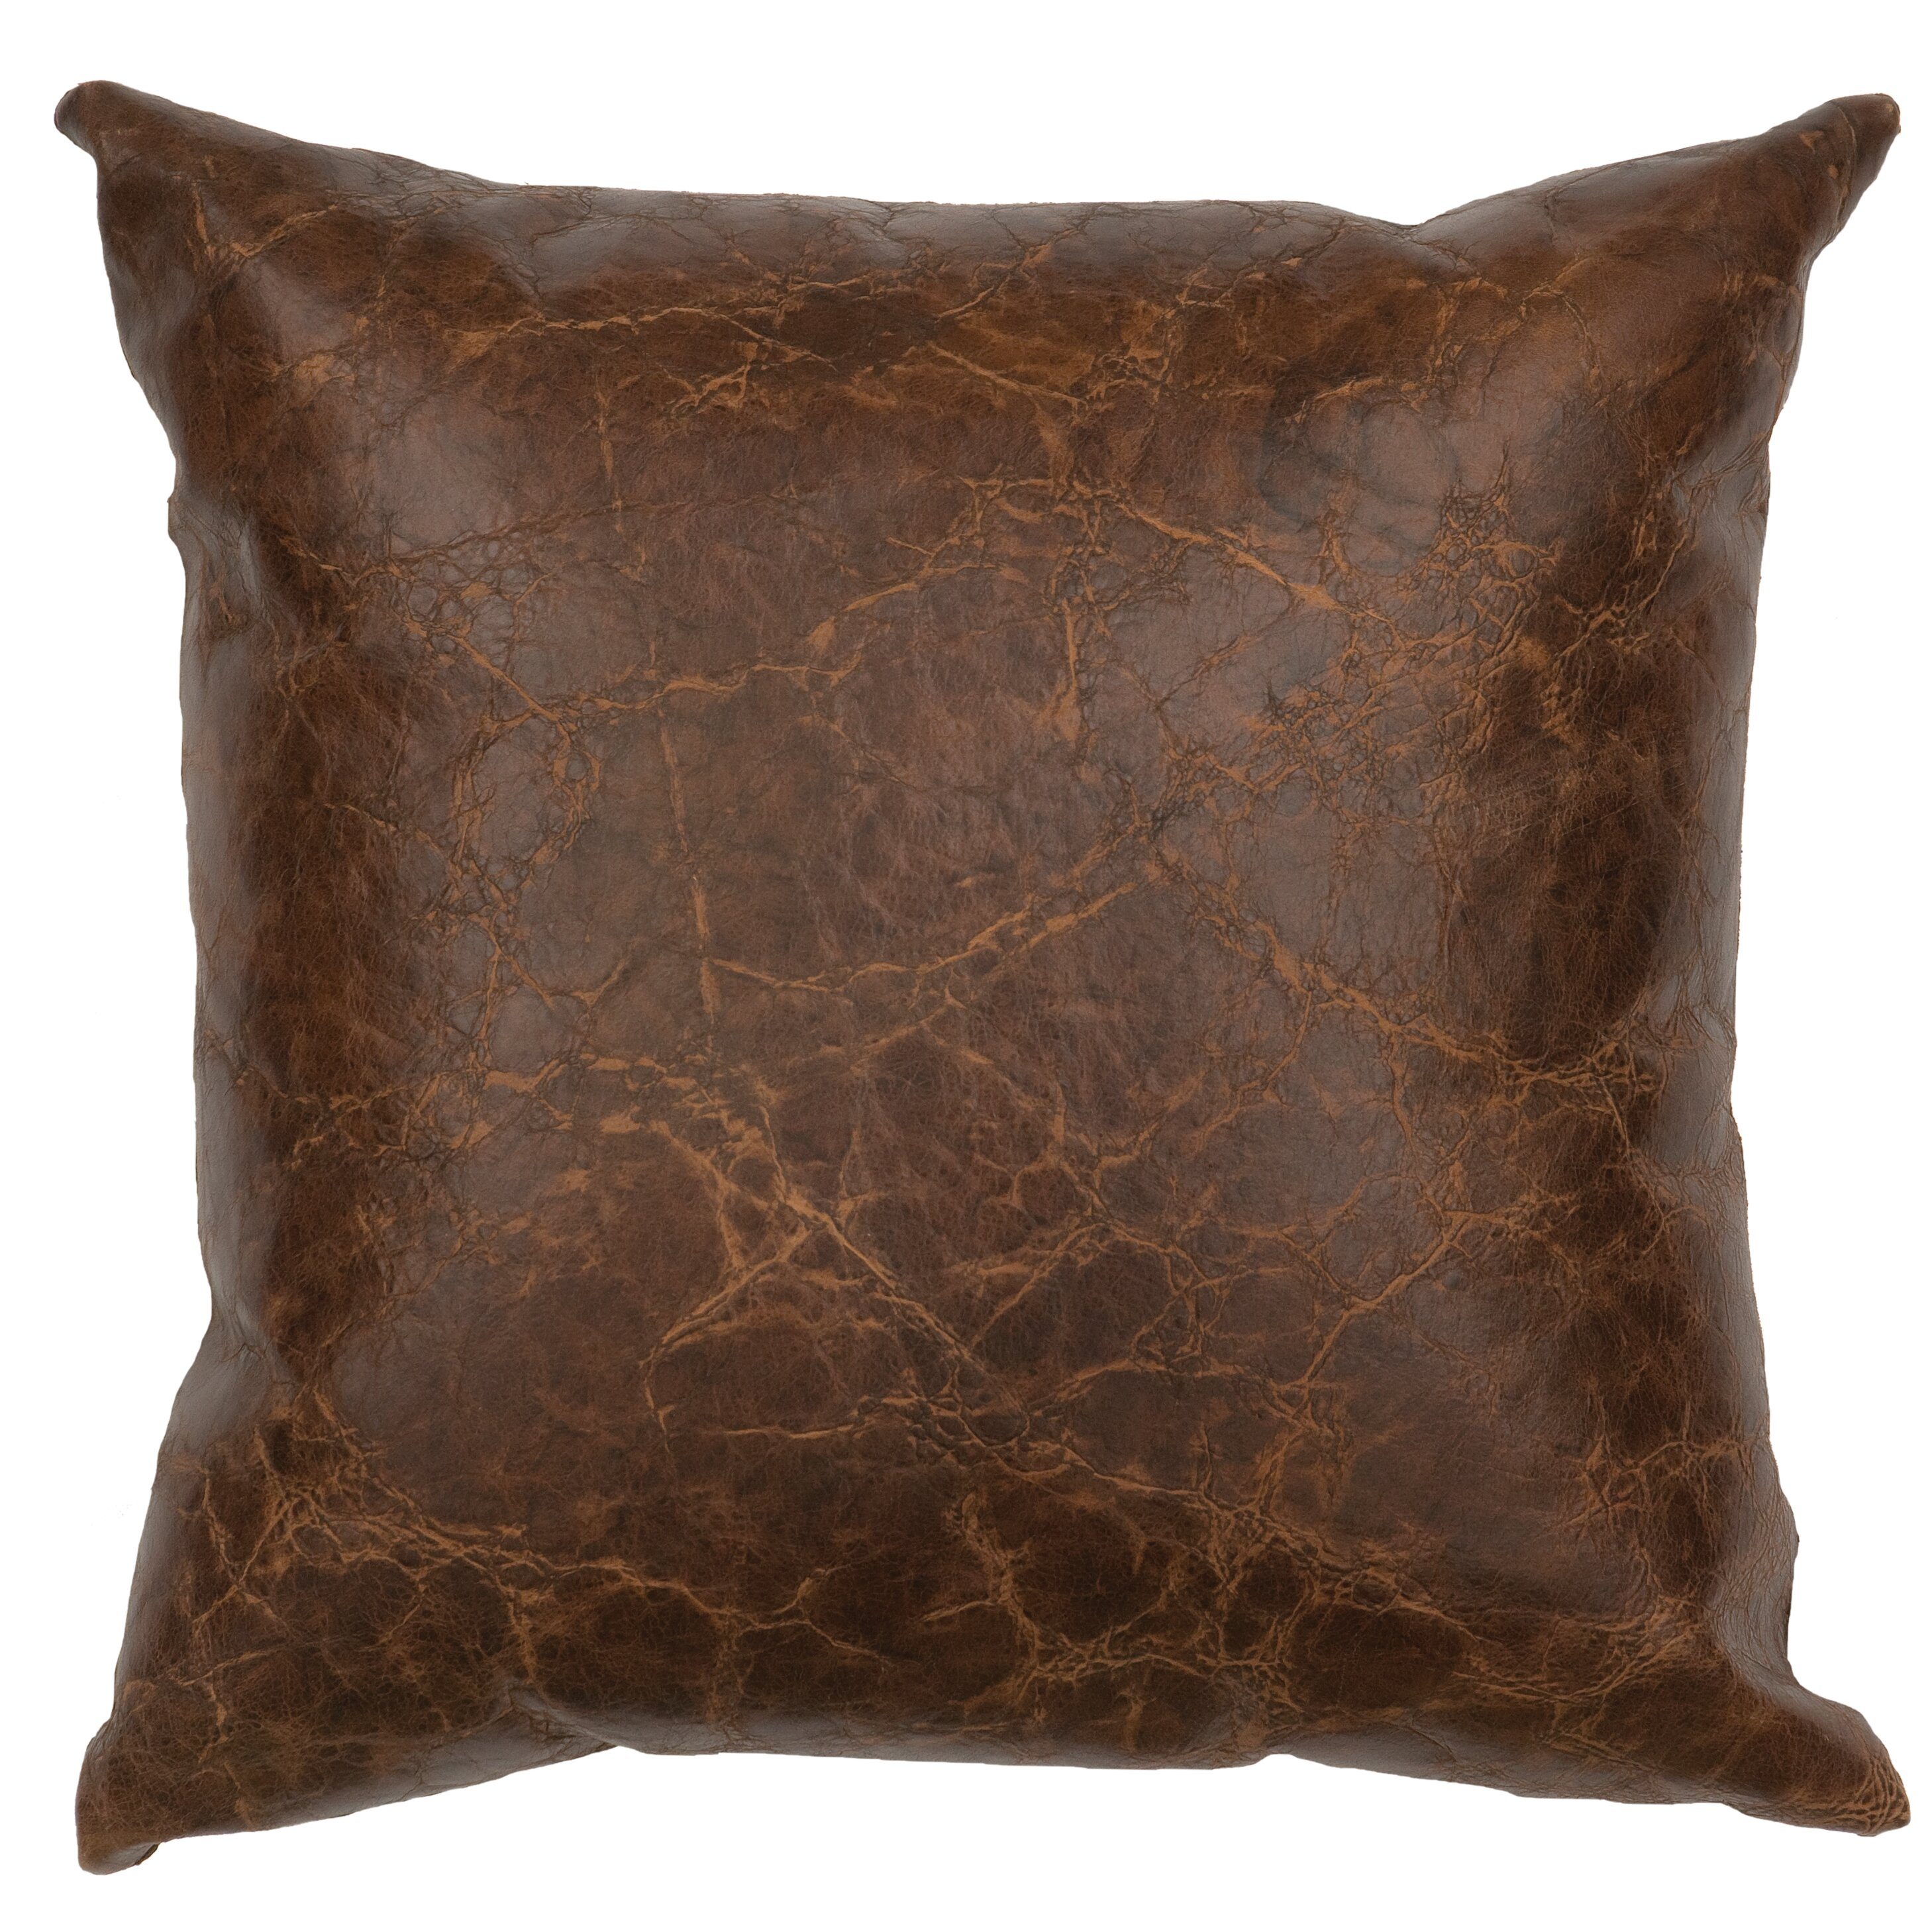 Wooded River Appalachian Leather Throw Pillow Wayfair